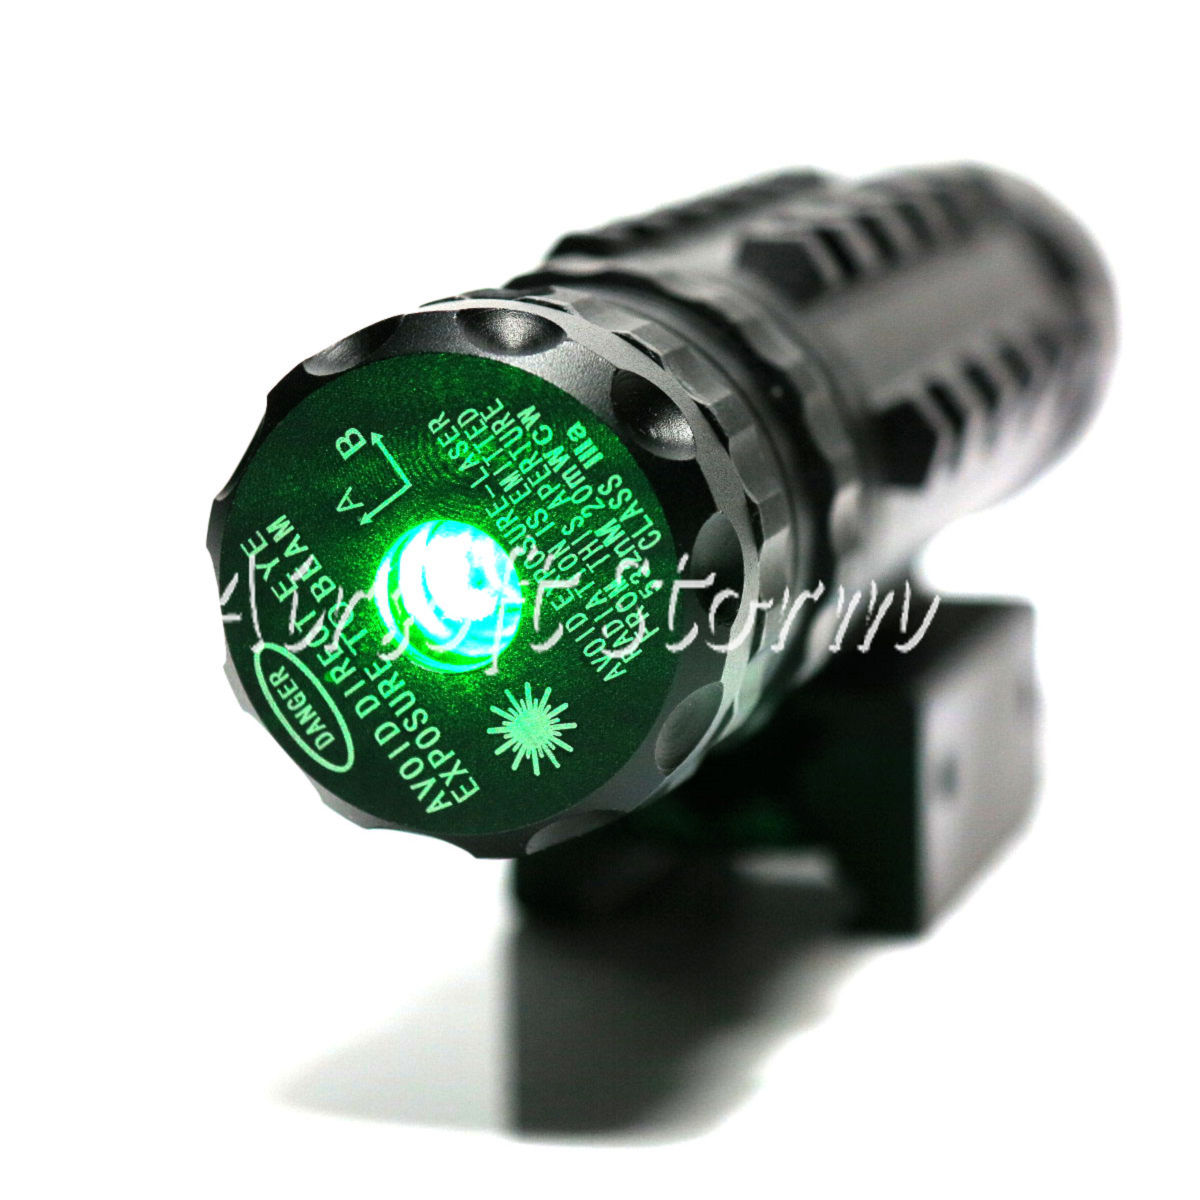 LXGD Tactical Gear High Power Tri-Rail Green Laser Sight Pointer JG-027 - Click Image to Close